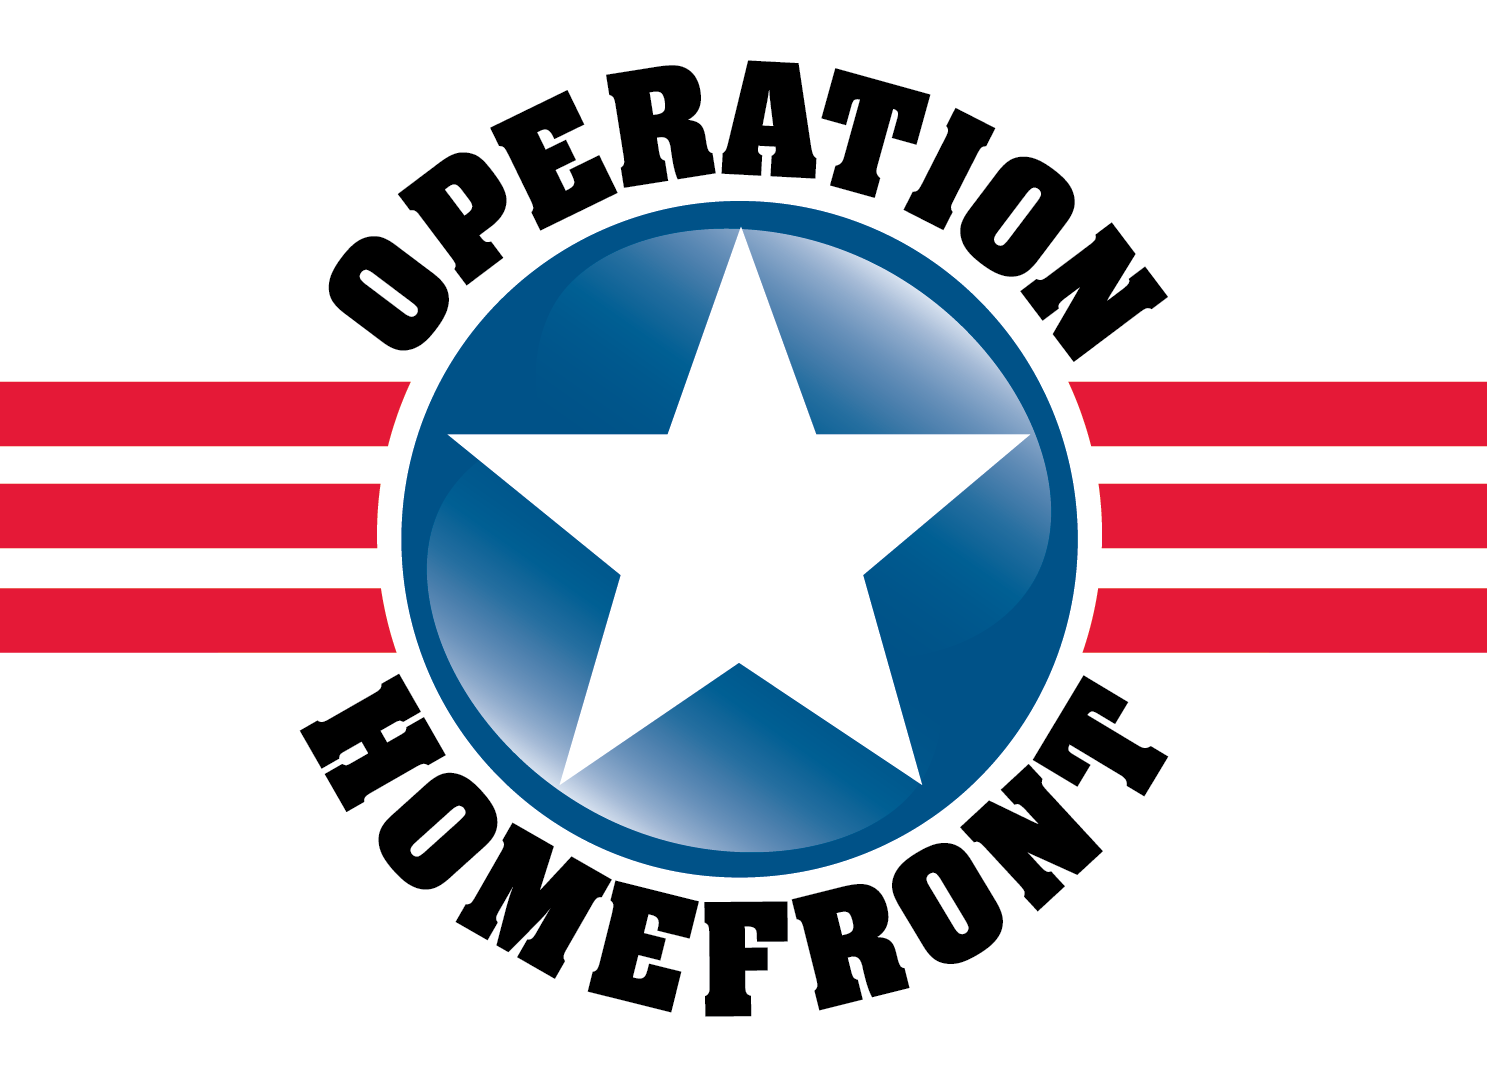 Carnival Cruise Line To Celebrate Texas Arrival of Carnival Freedom With Special Event Honoring Operation Homefront and Featuring Performance by Martina McBride